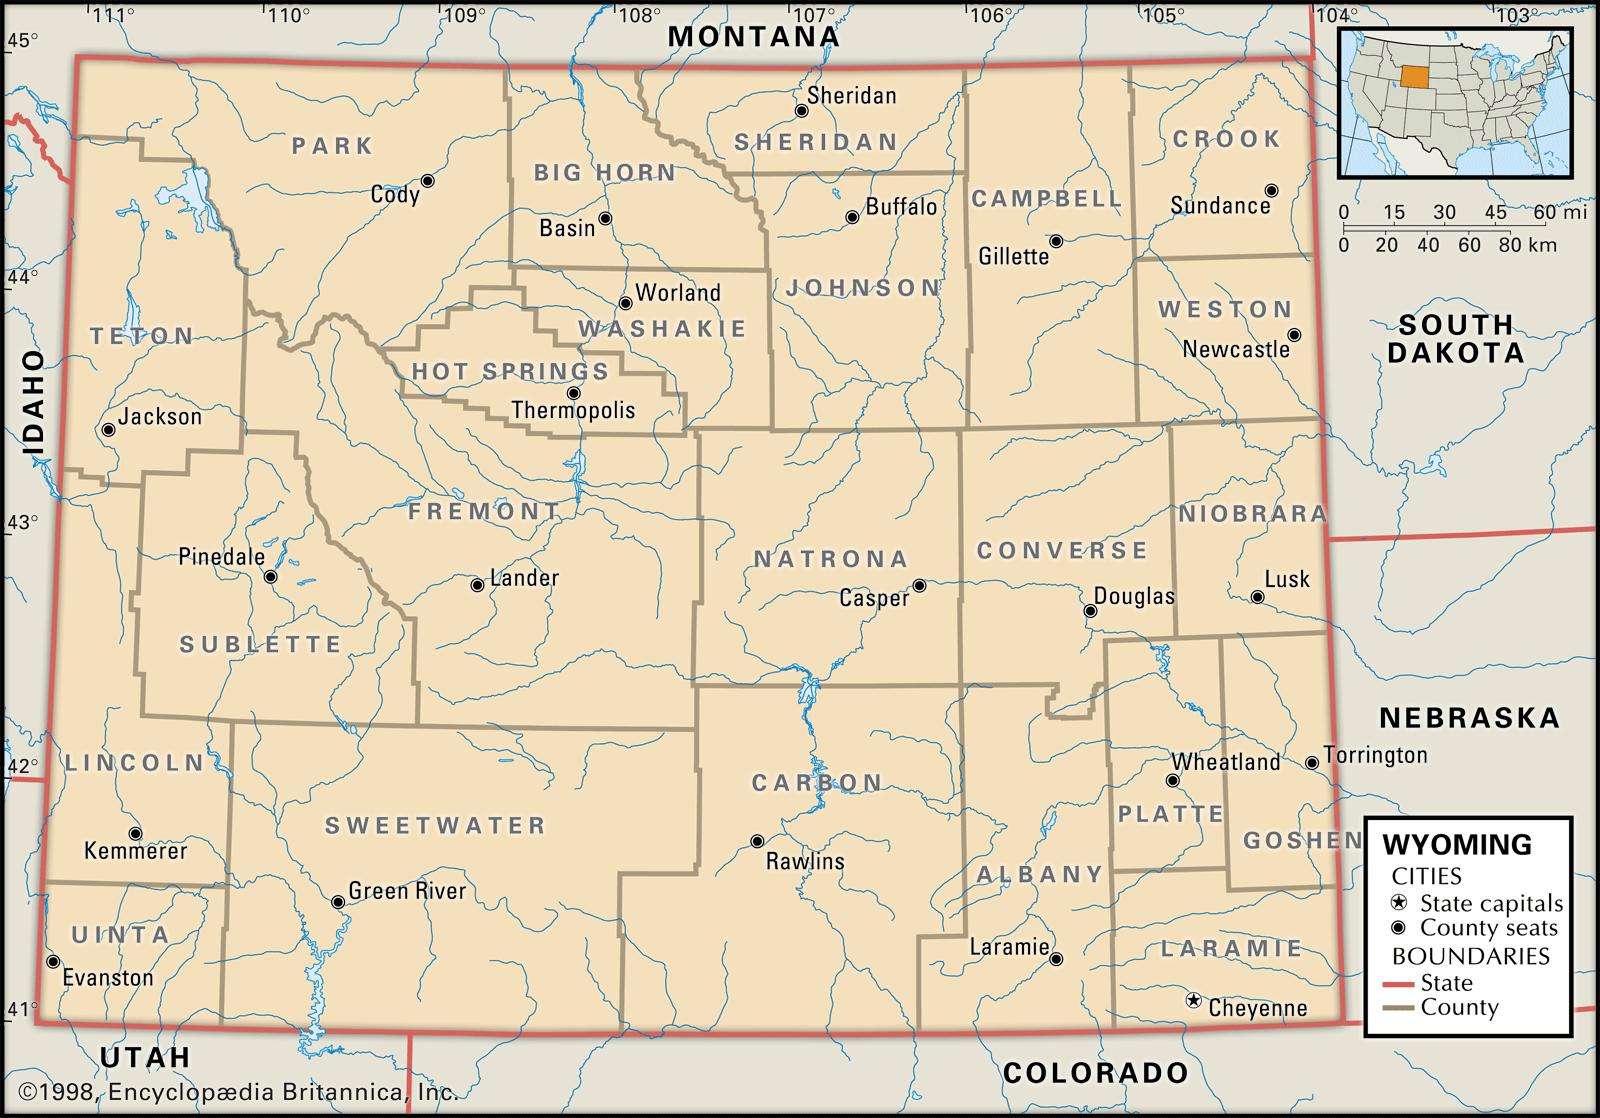 Map Of Colorado, Map Of Wyoming Counties, Map Of Colorado